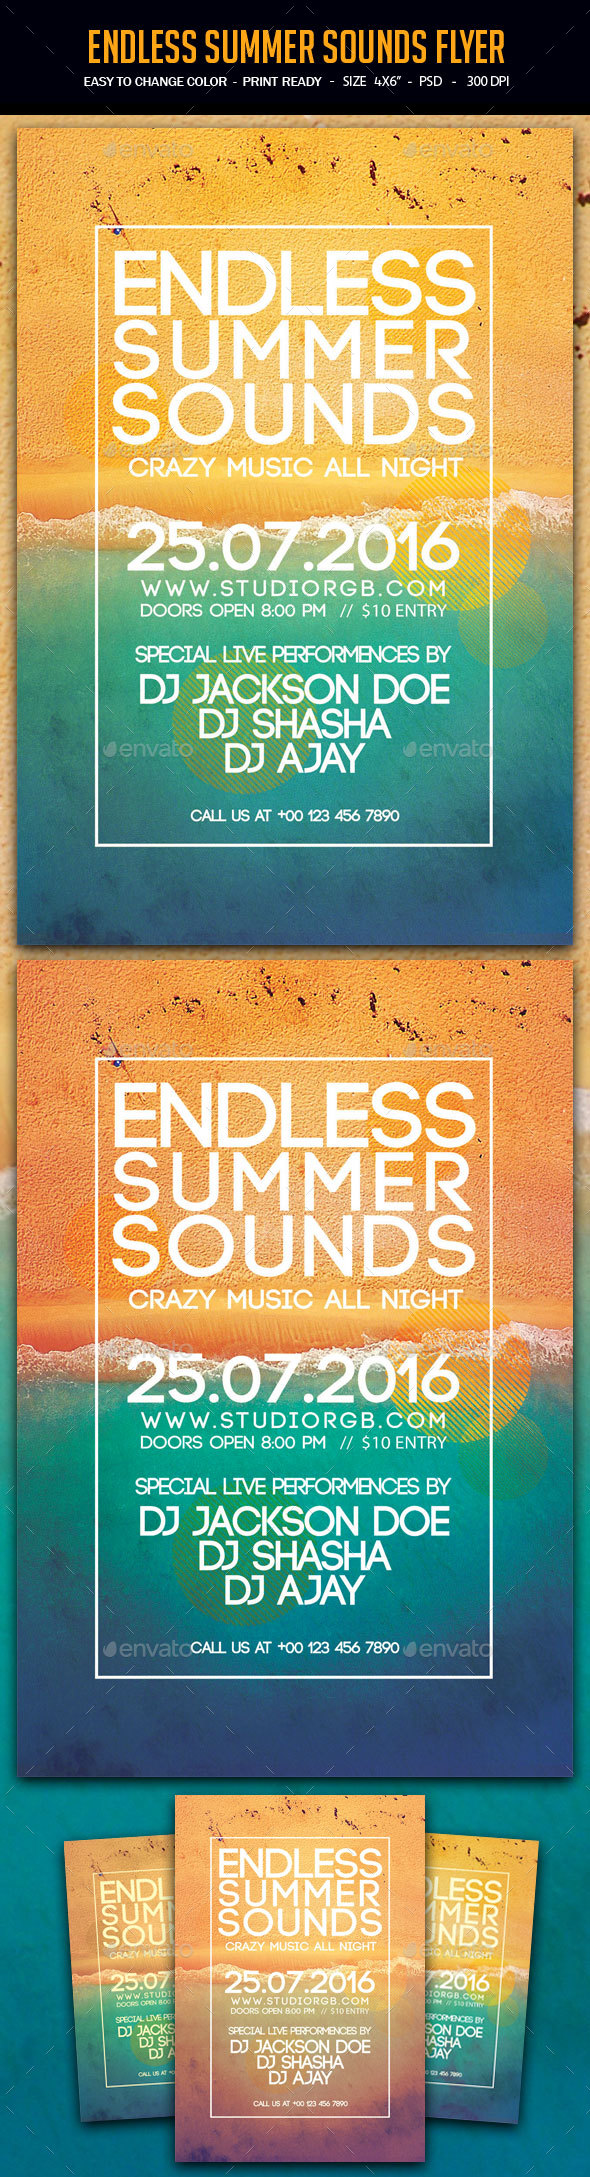 Endless Summer Sounds Flyer - Clubs & Parties Events